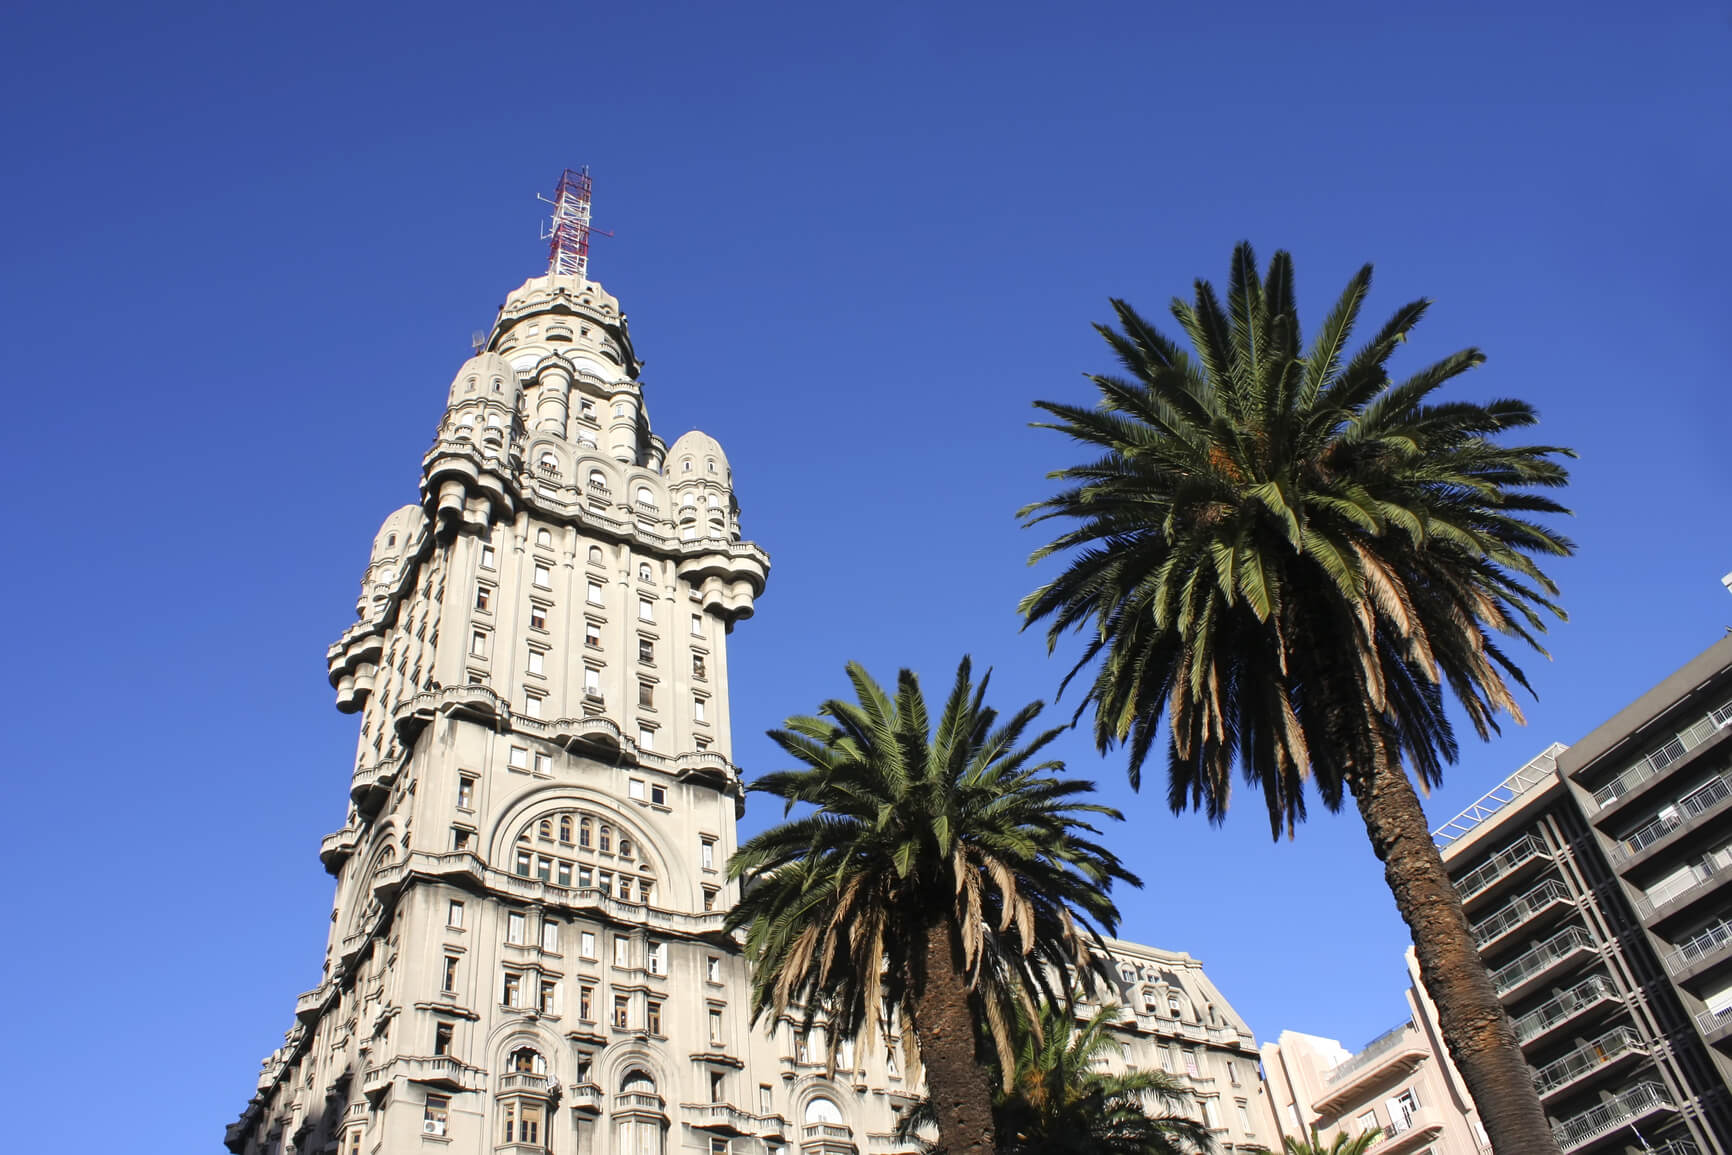 Santiago, Chile to Montevideo, Uruguay for only $175 USD roundtrip